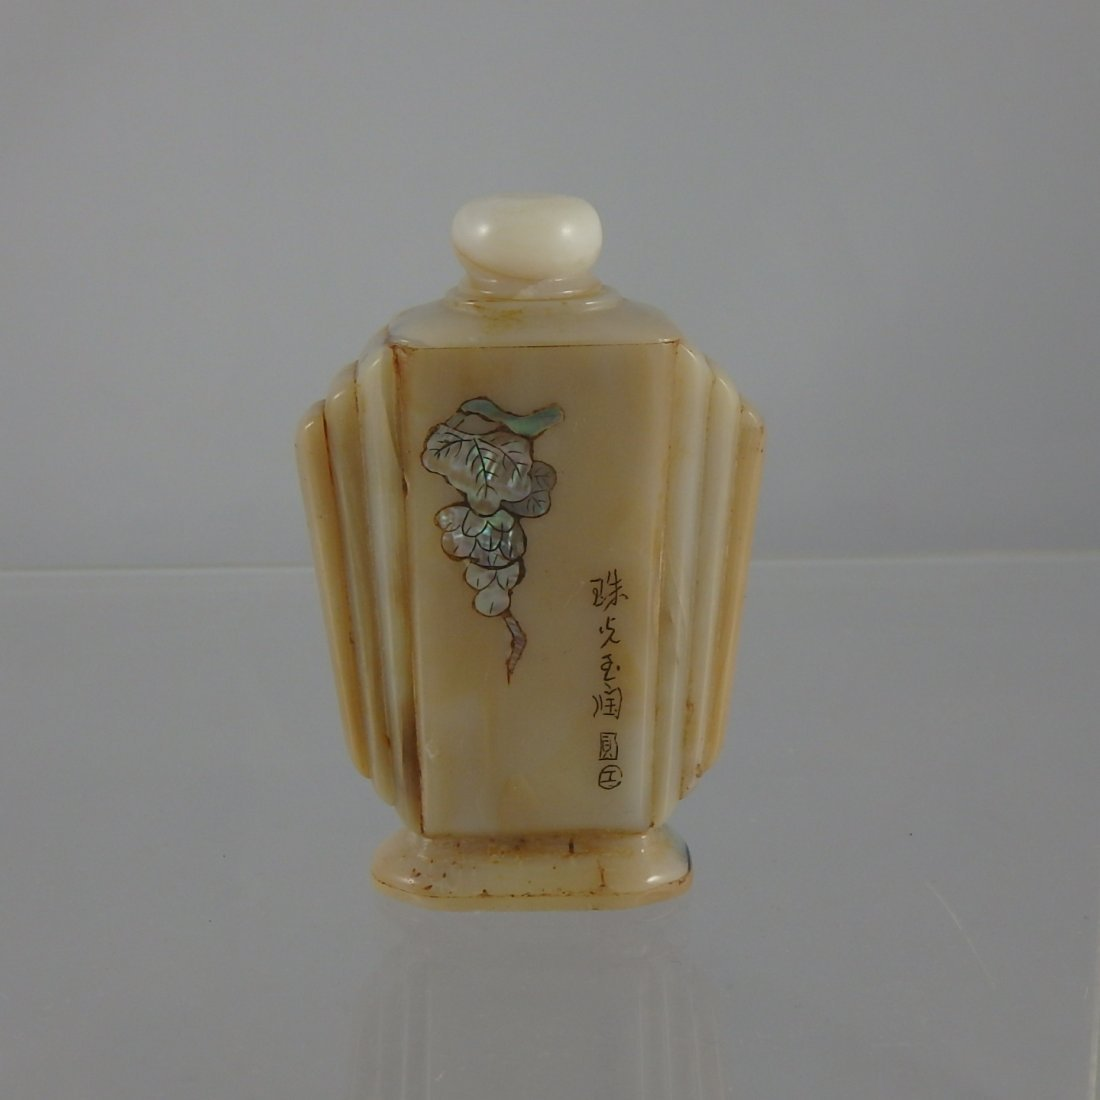 Chinese Qing Dynasty Jade Snuffbottle